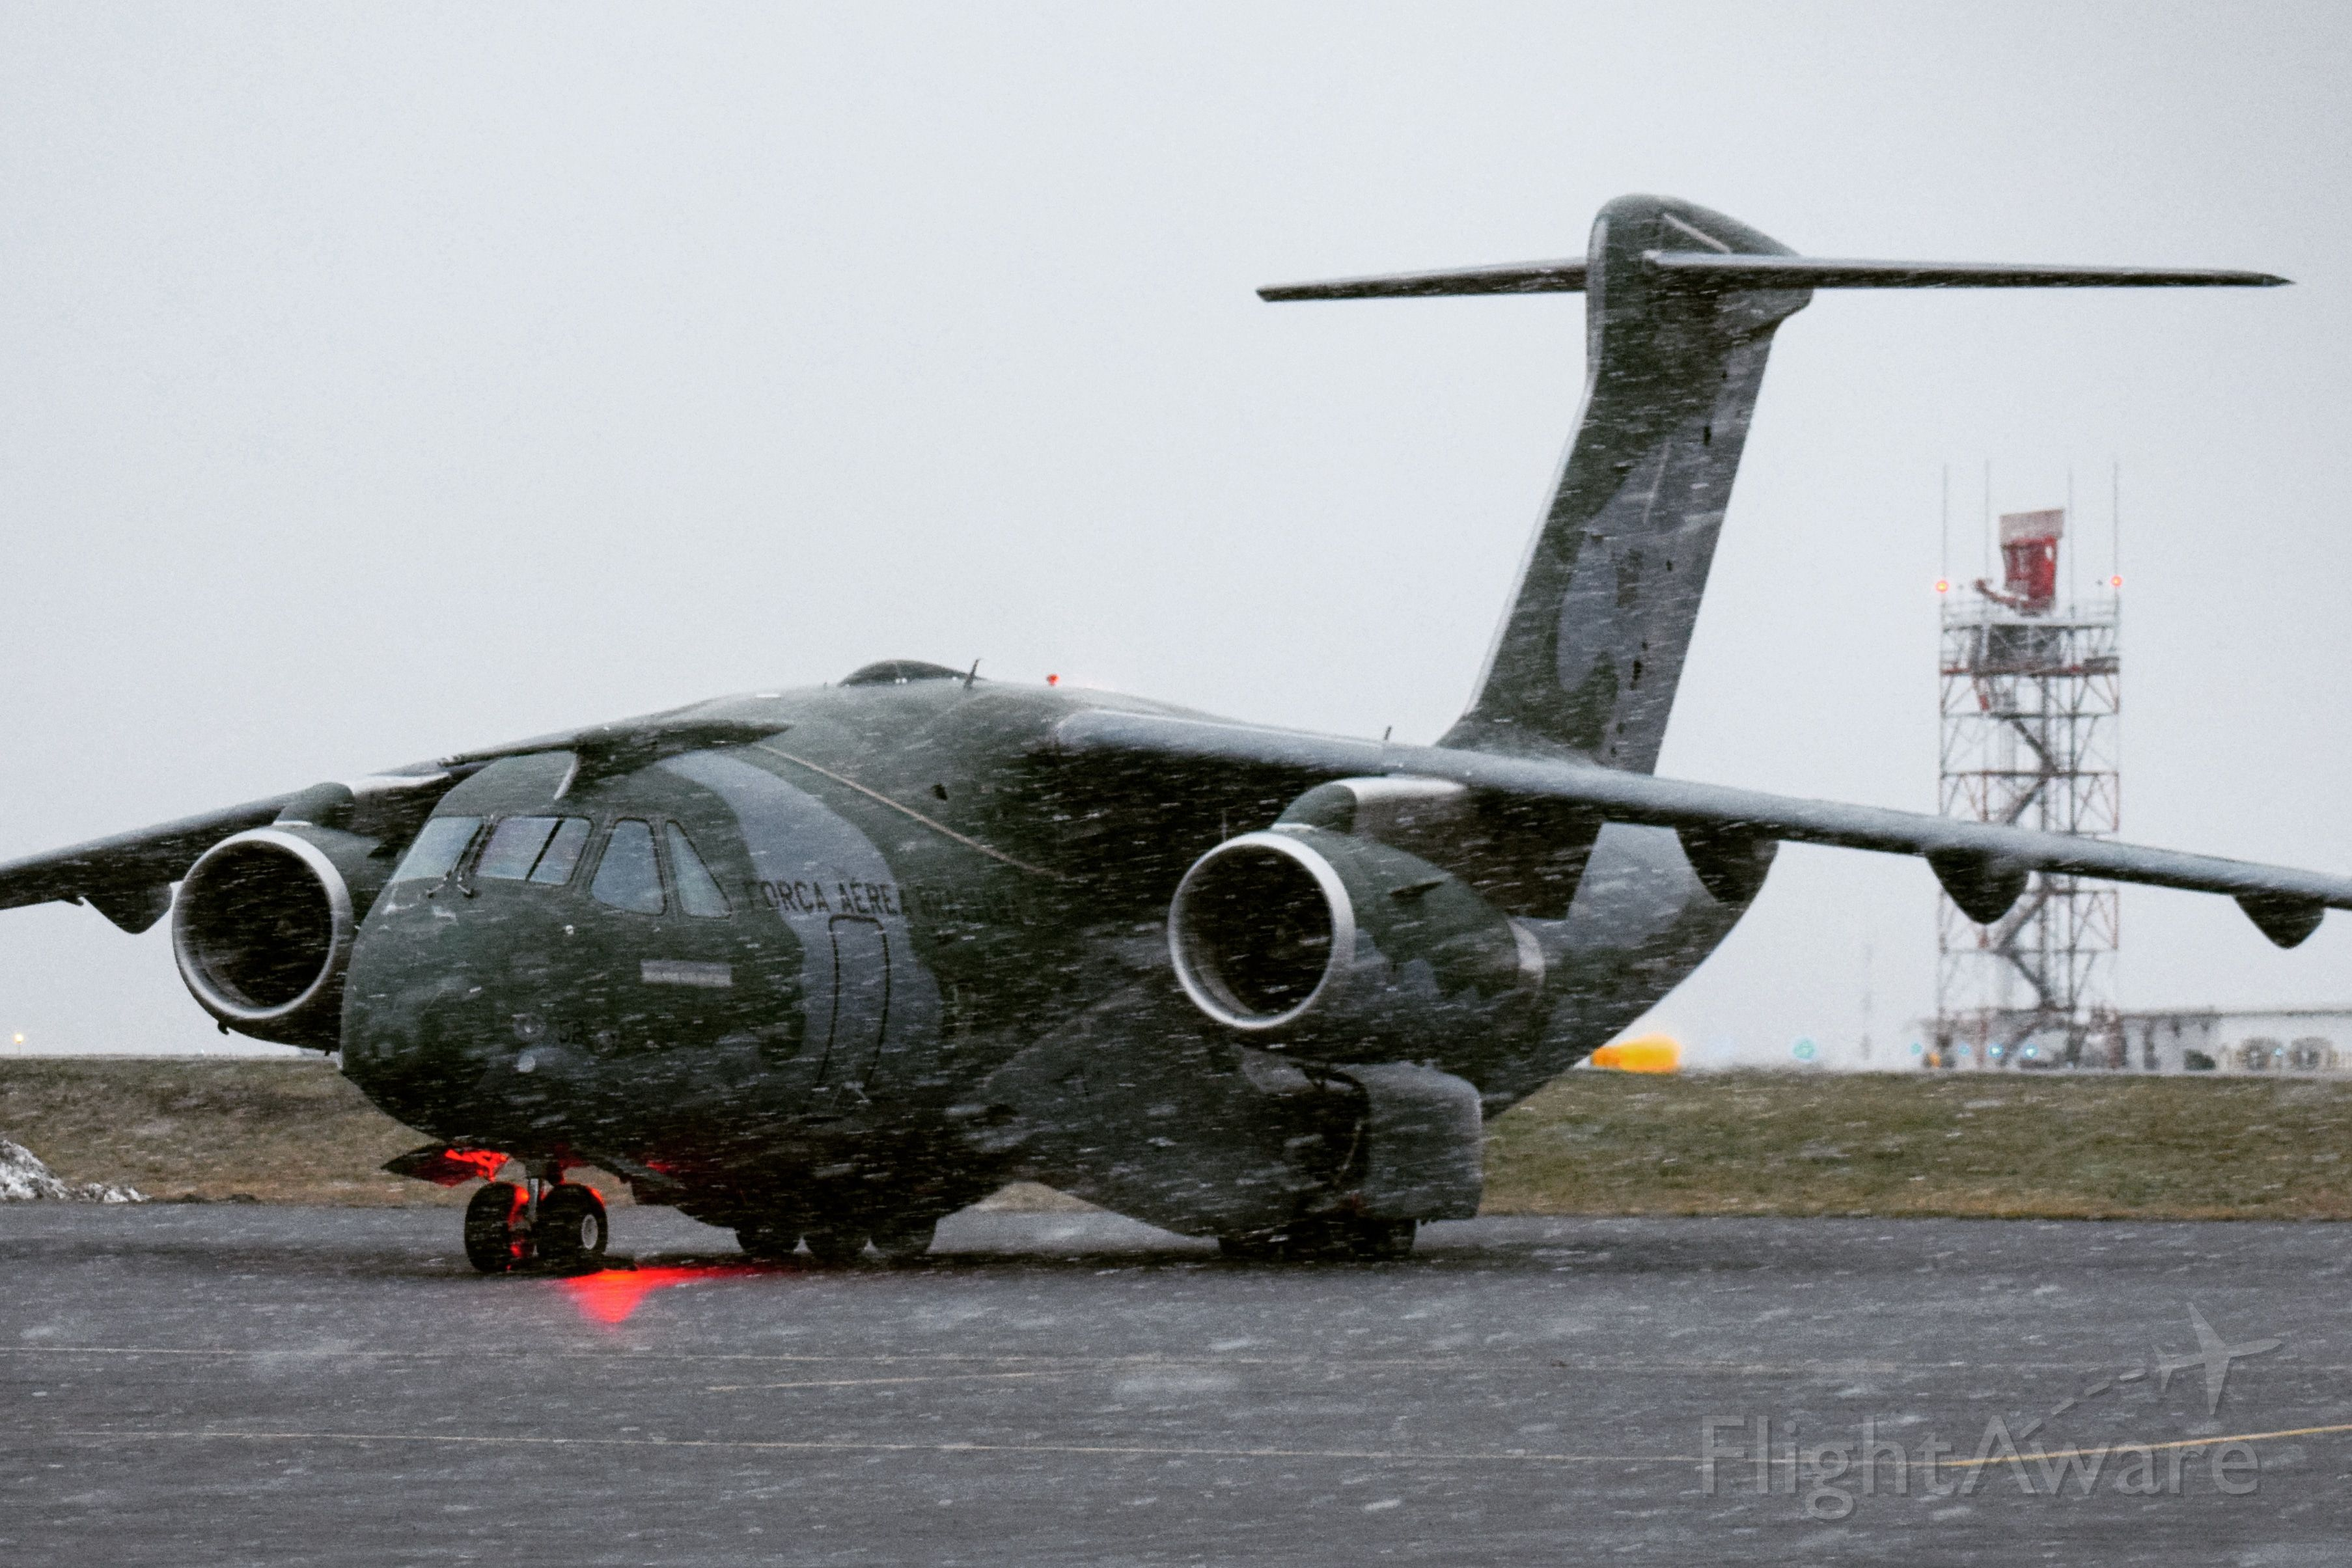 EMBRAER KC-390 (PT-ZNG) - Embraer KC-390 Millennium br /Cold weather testing from Duluth MN to Buffalo NY.